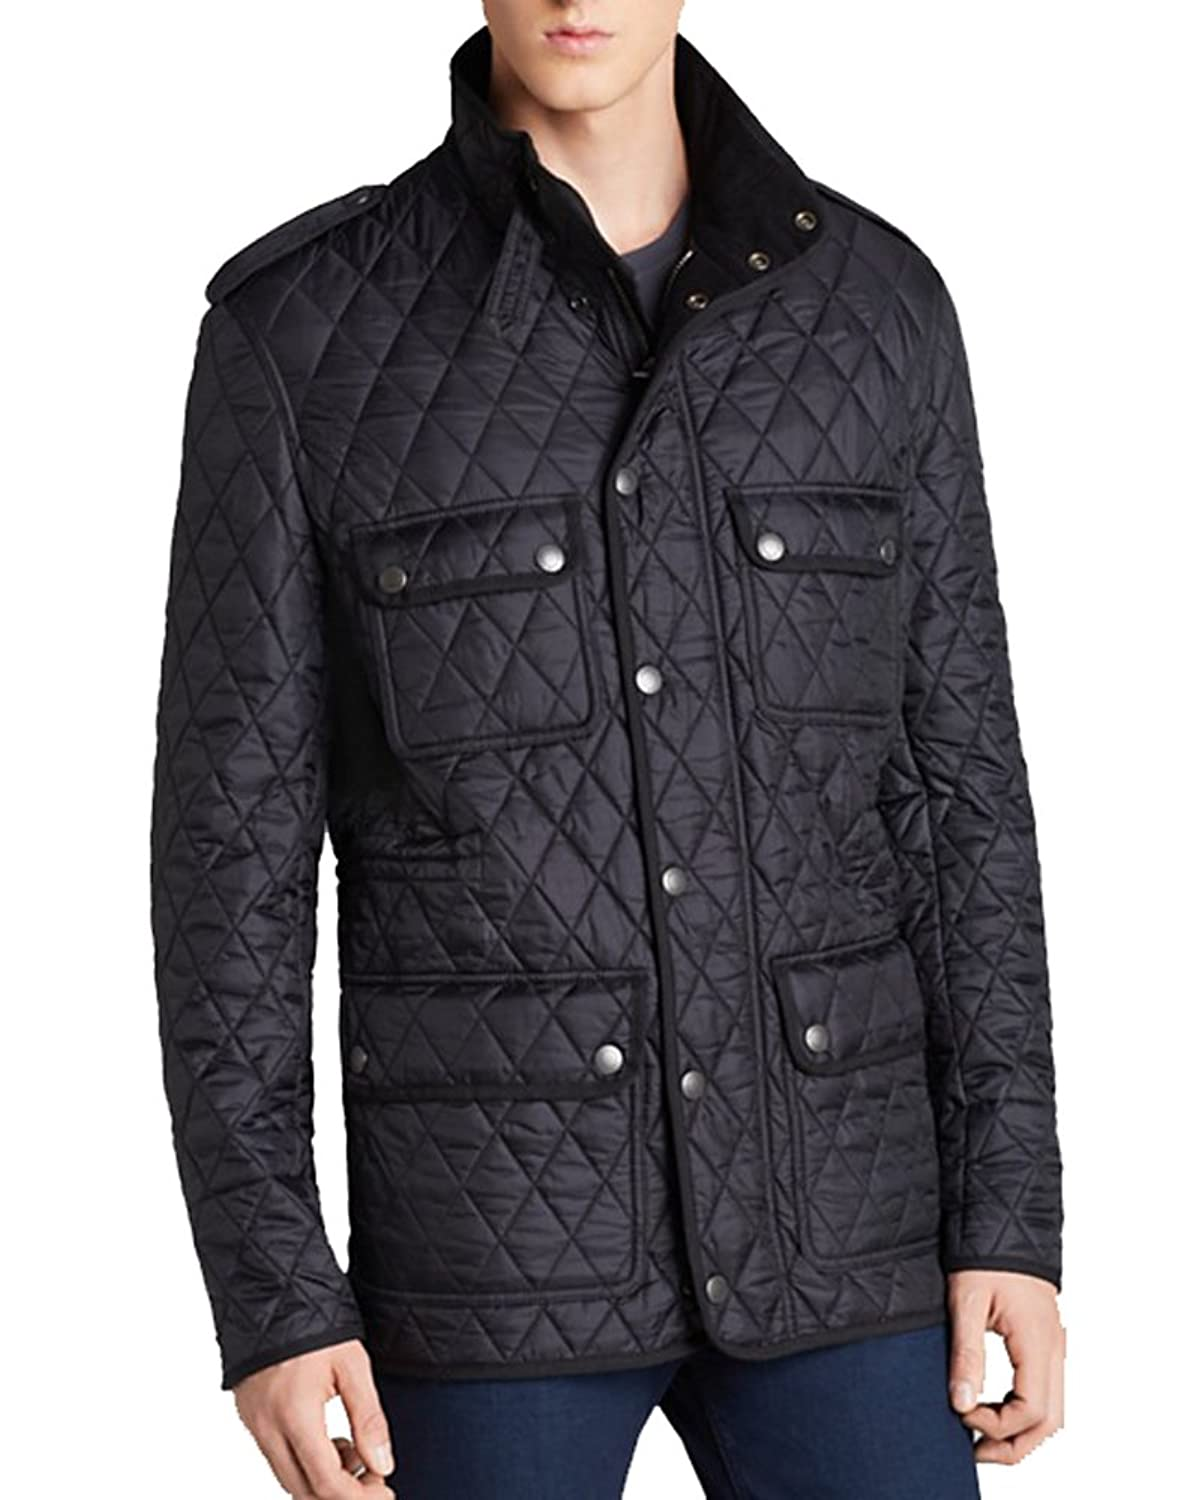 jacket quilt in pieces on burberry ashurst city navy investment the quilted mens kelly